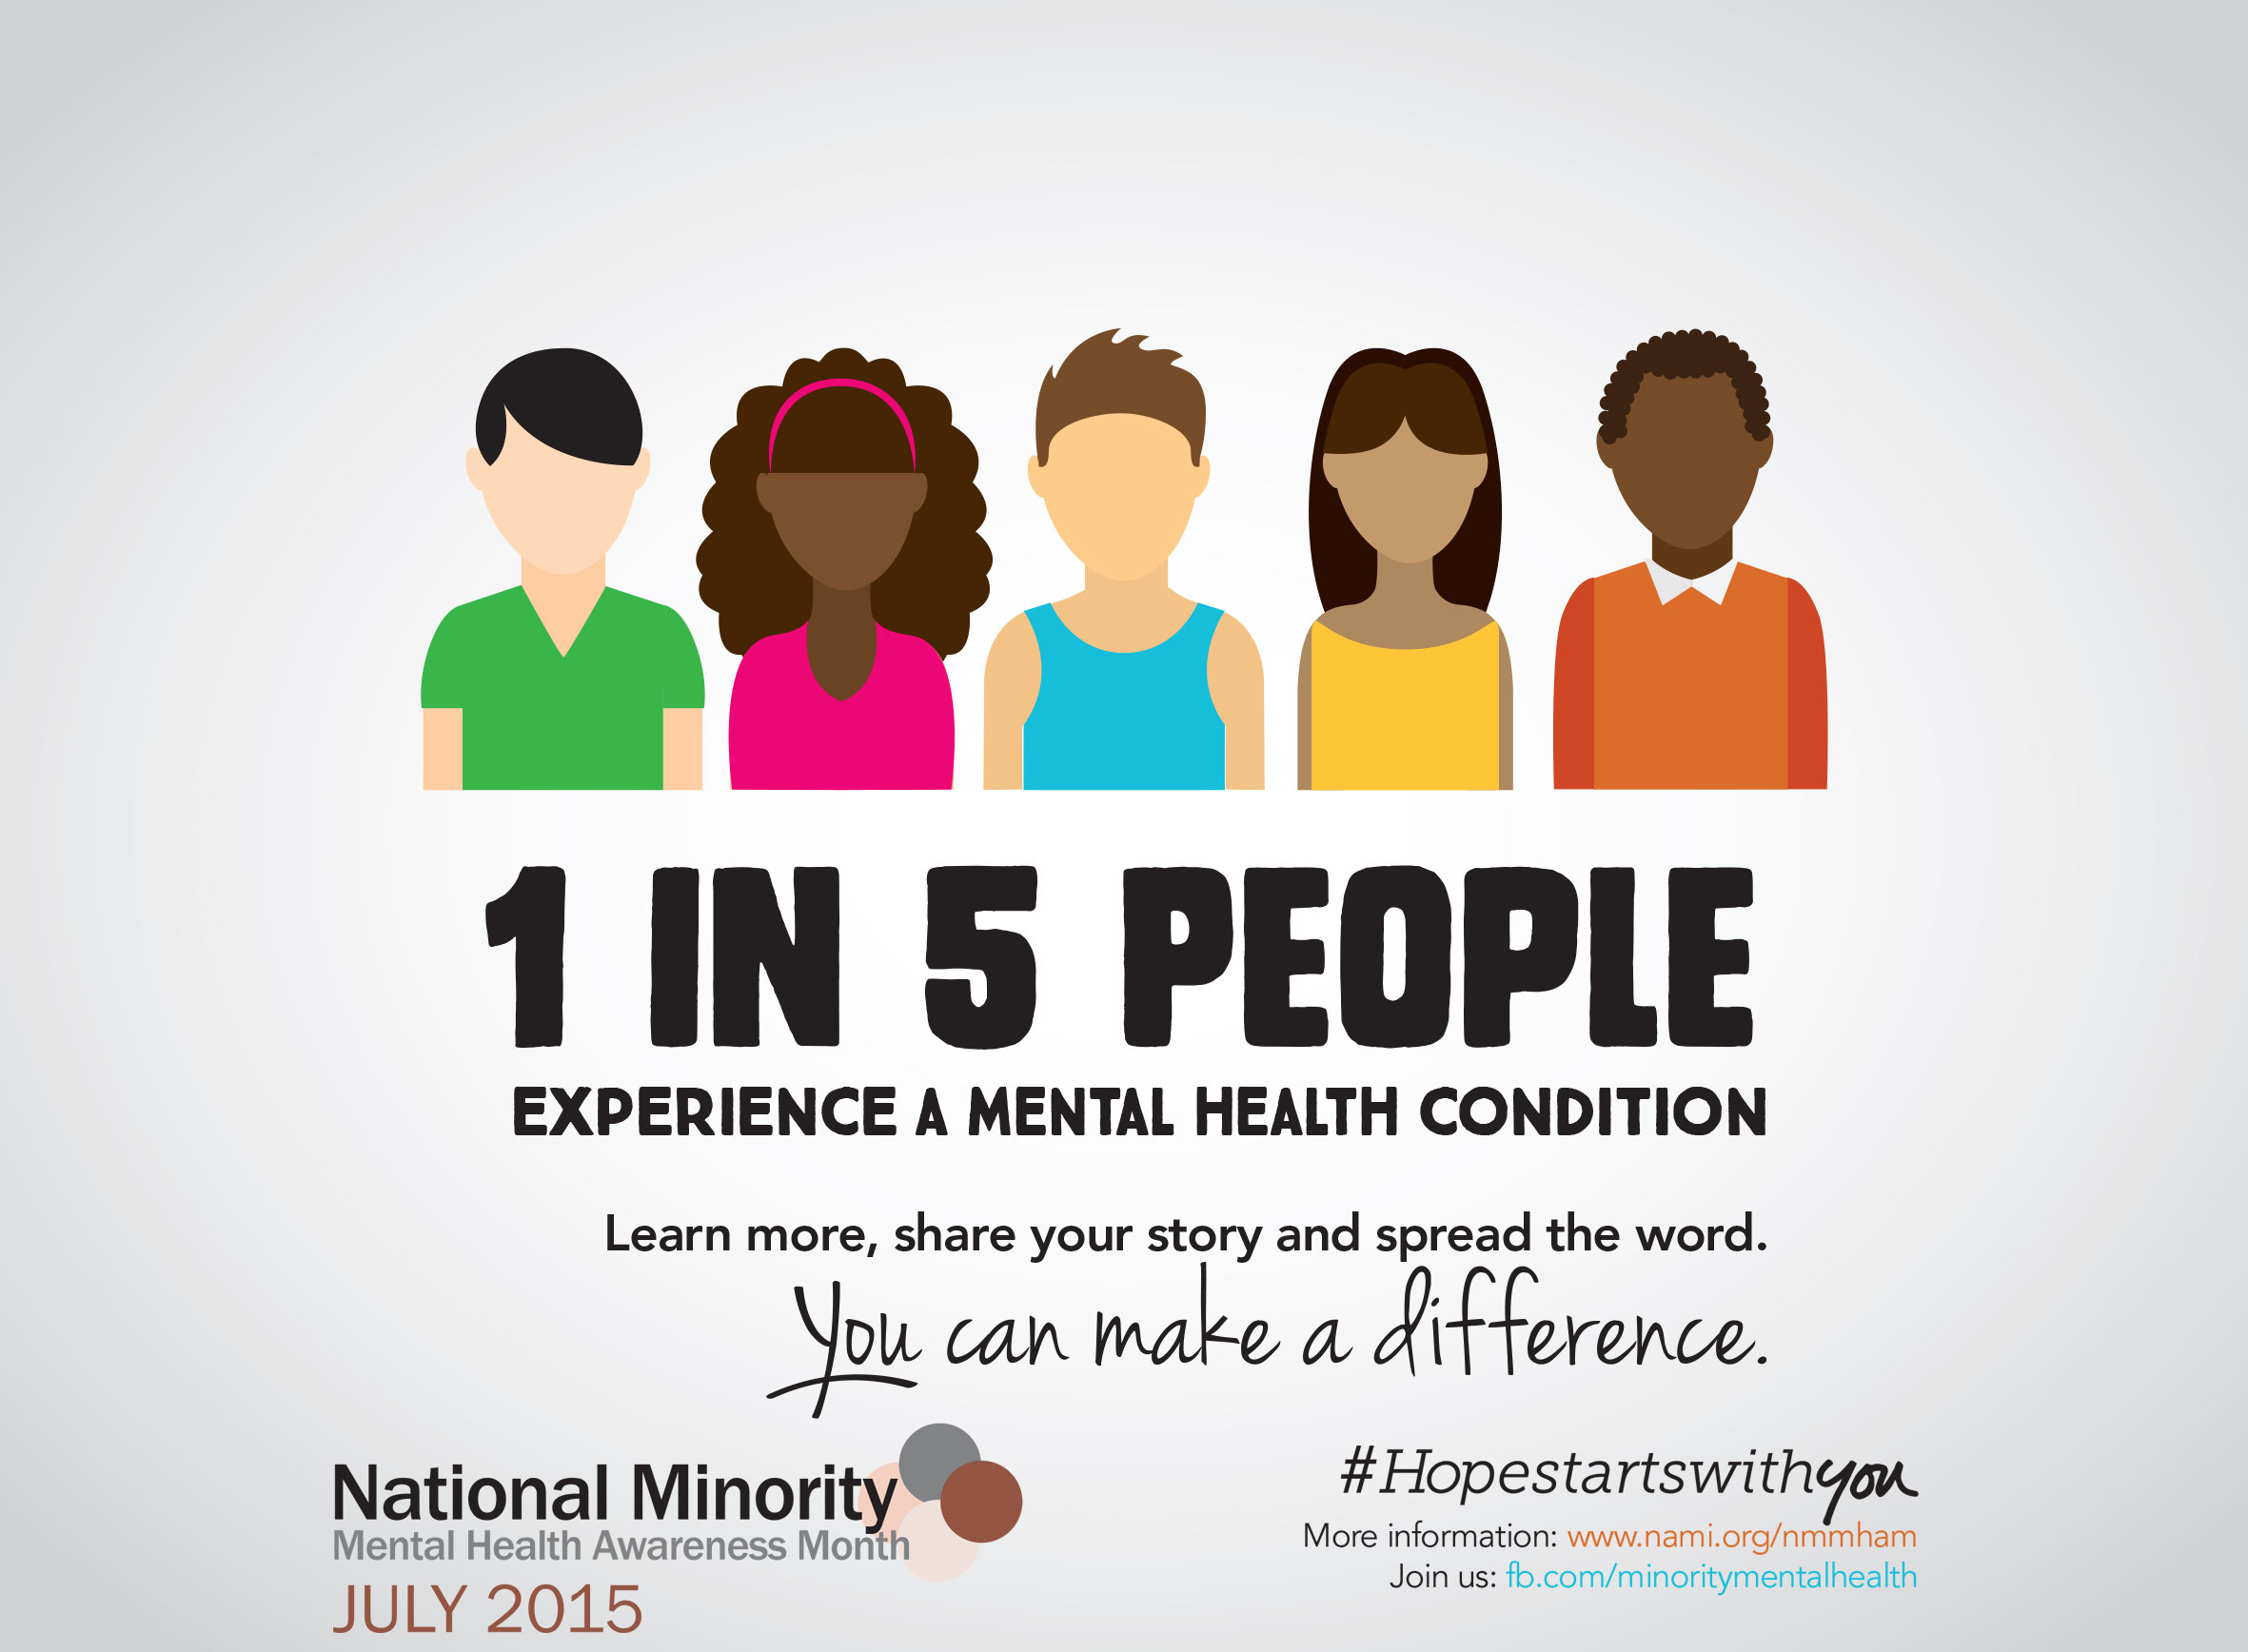 July National Minority Mental Health Awareness Month